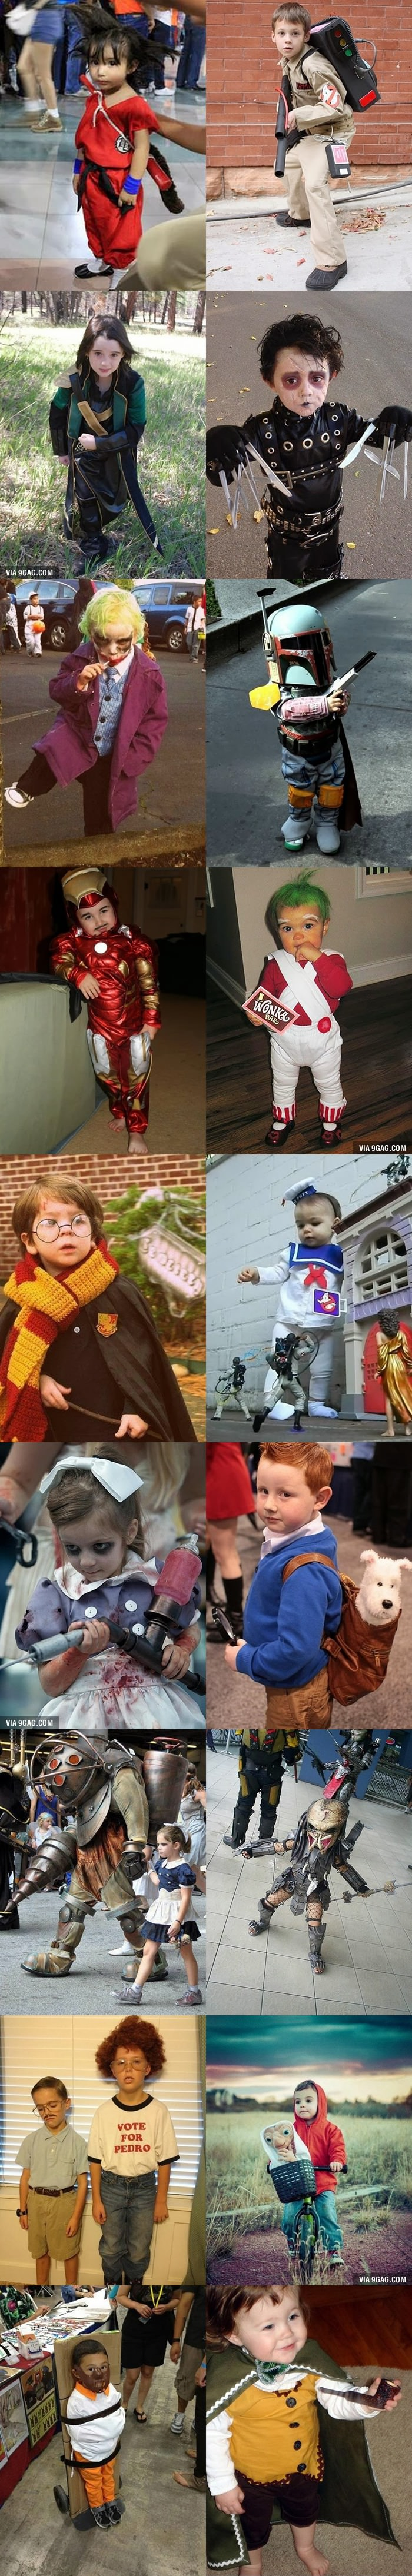 9GAG - Parenting done right: The Compilation